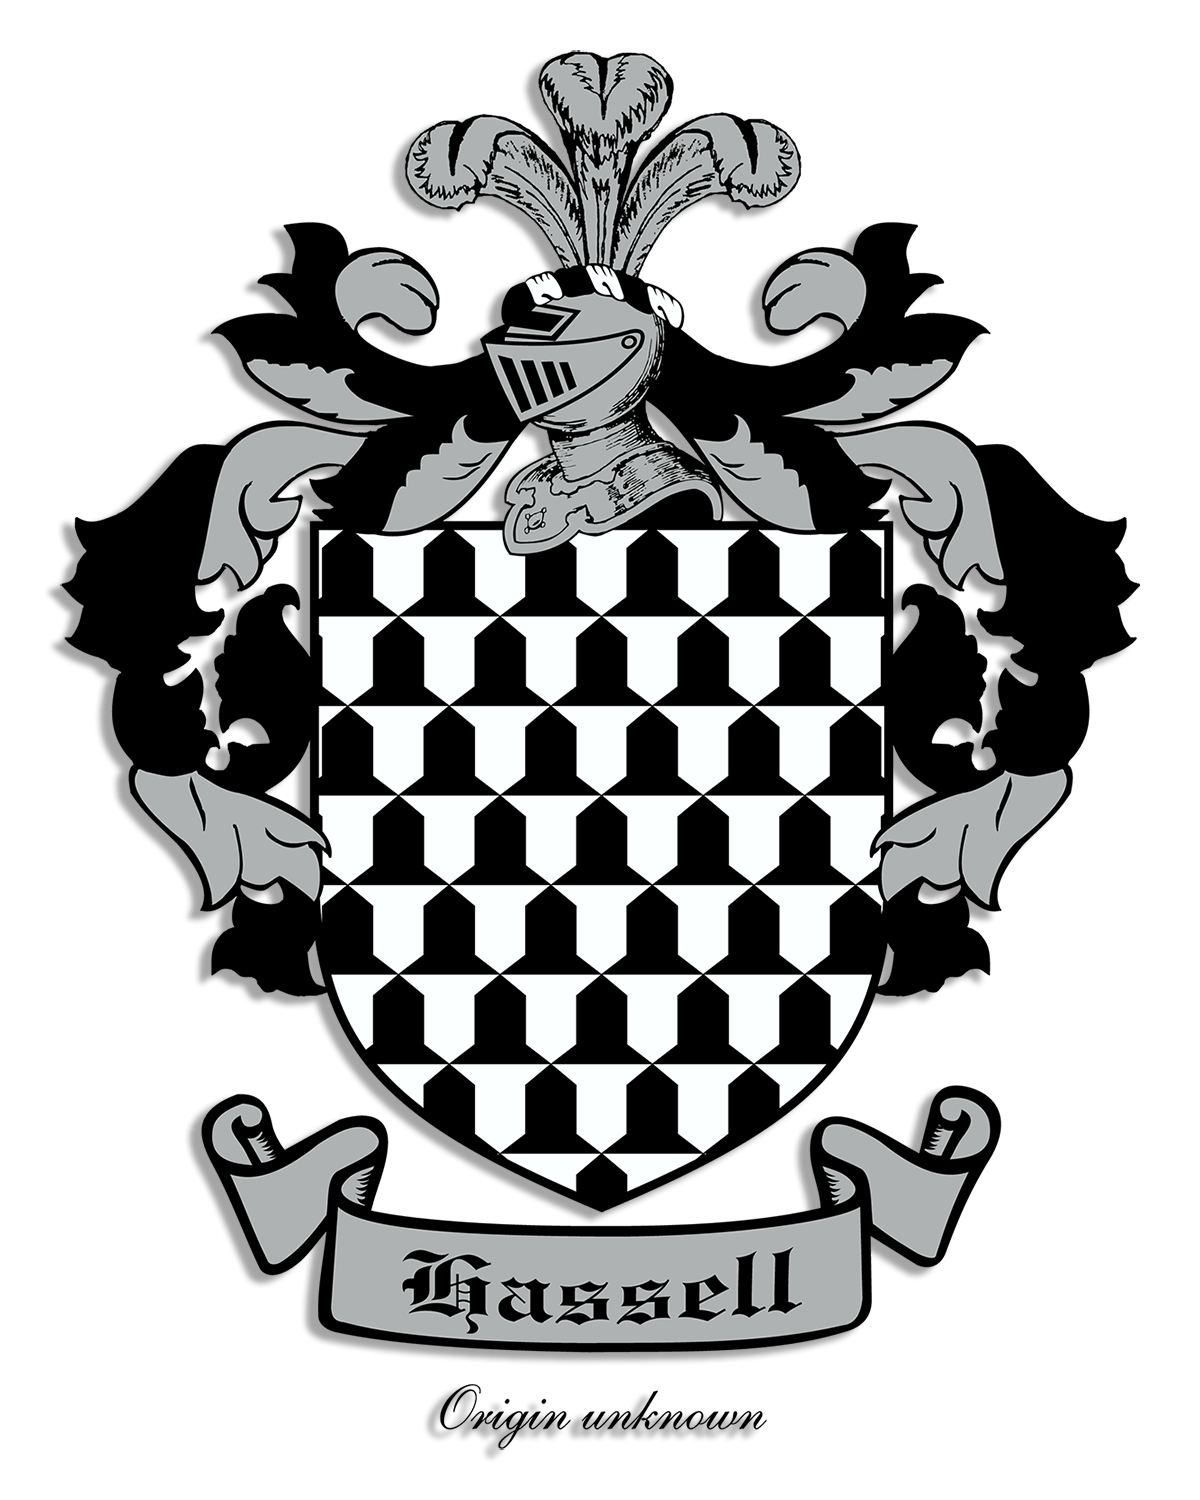 Fleur de lis designs hassell coat of arms and crest designs arms vaire argent and sable geographic region date unknown source burkes general armory of england scotland ireland and wales buycottarizona Images